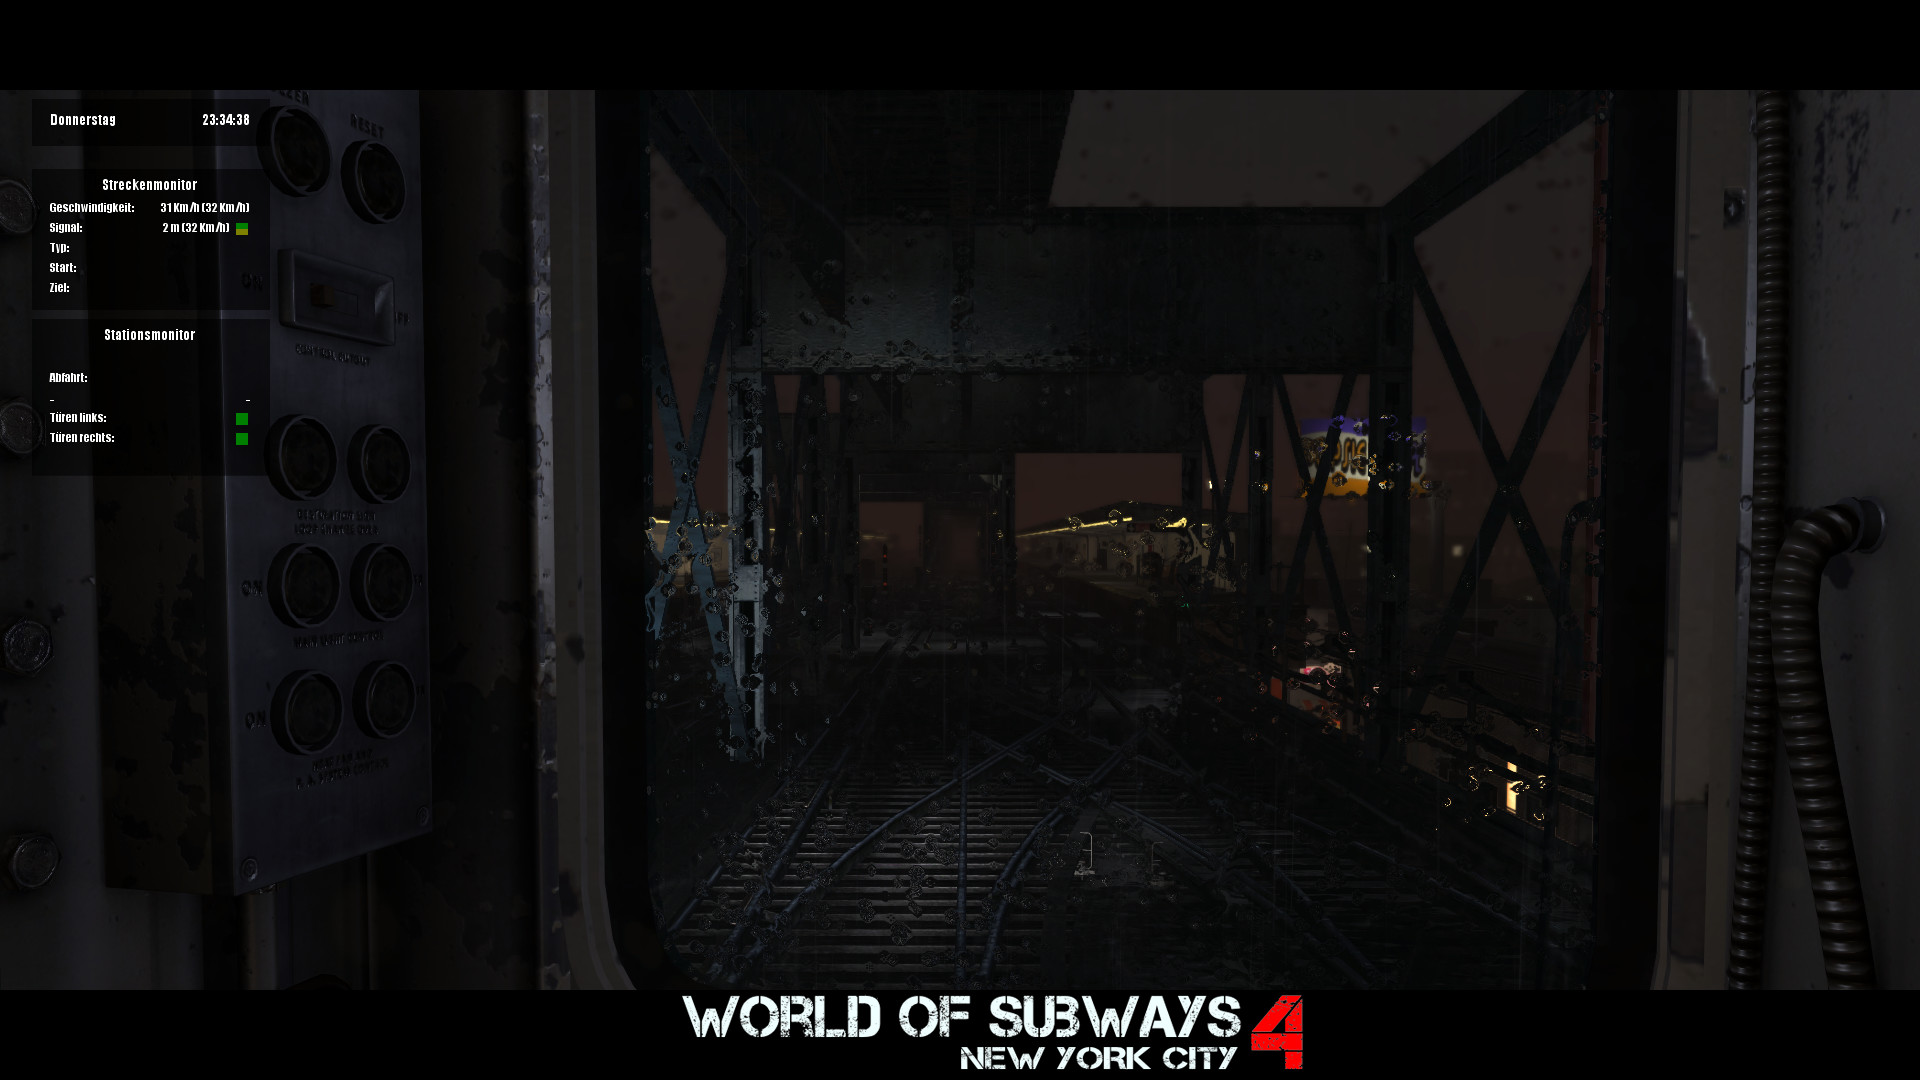 World of Subways 4 – New York Line 7 screenshot1 on PCGamesCDN you can download cracked unlocked full pc version game direct free download with mirrors and torrent.